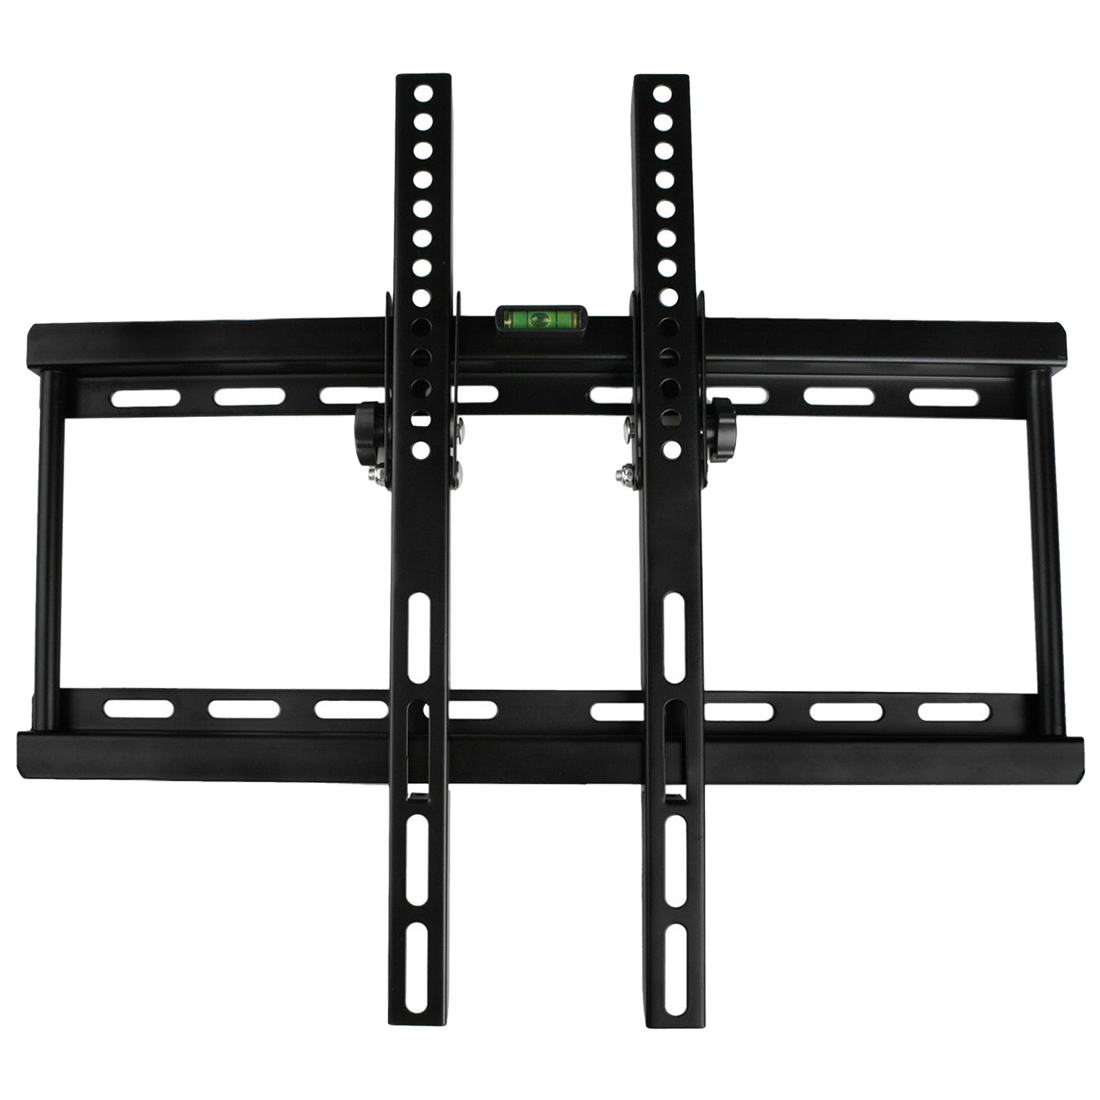 Home Improvement Cooperative Ksol Flat Slim Tv Wall Mount Bracket 23 28 30 32 40 42 48 50 55 Inch Led Lcd Plasma Beneficial To Essential Medulla